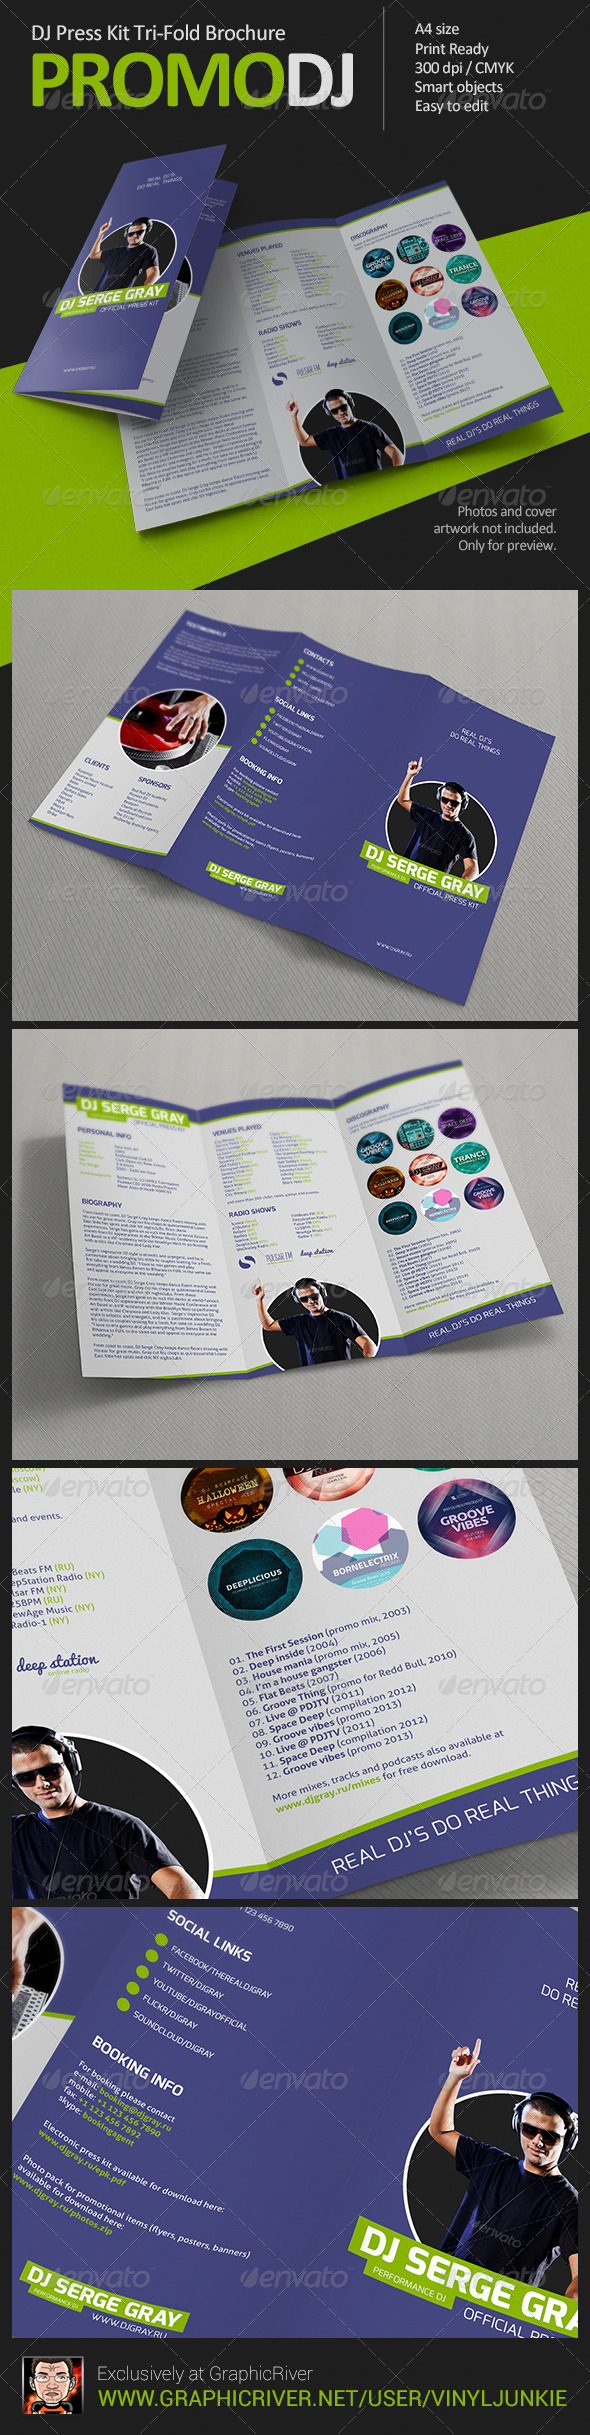 PromoDJ - DJ Press Kit Tri-Fold Brochure - Informational Brochures